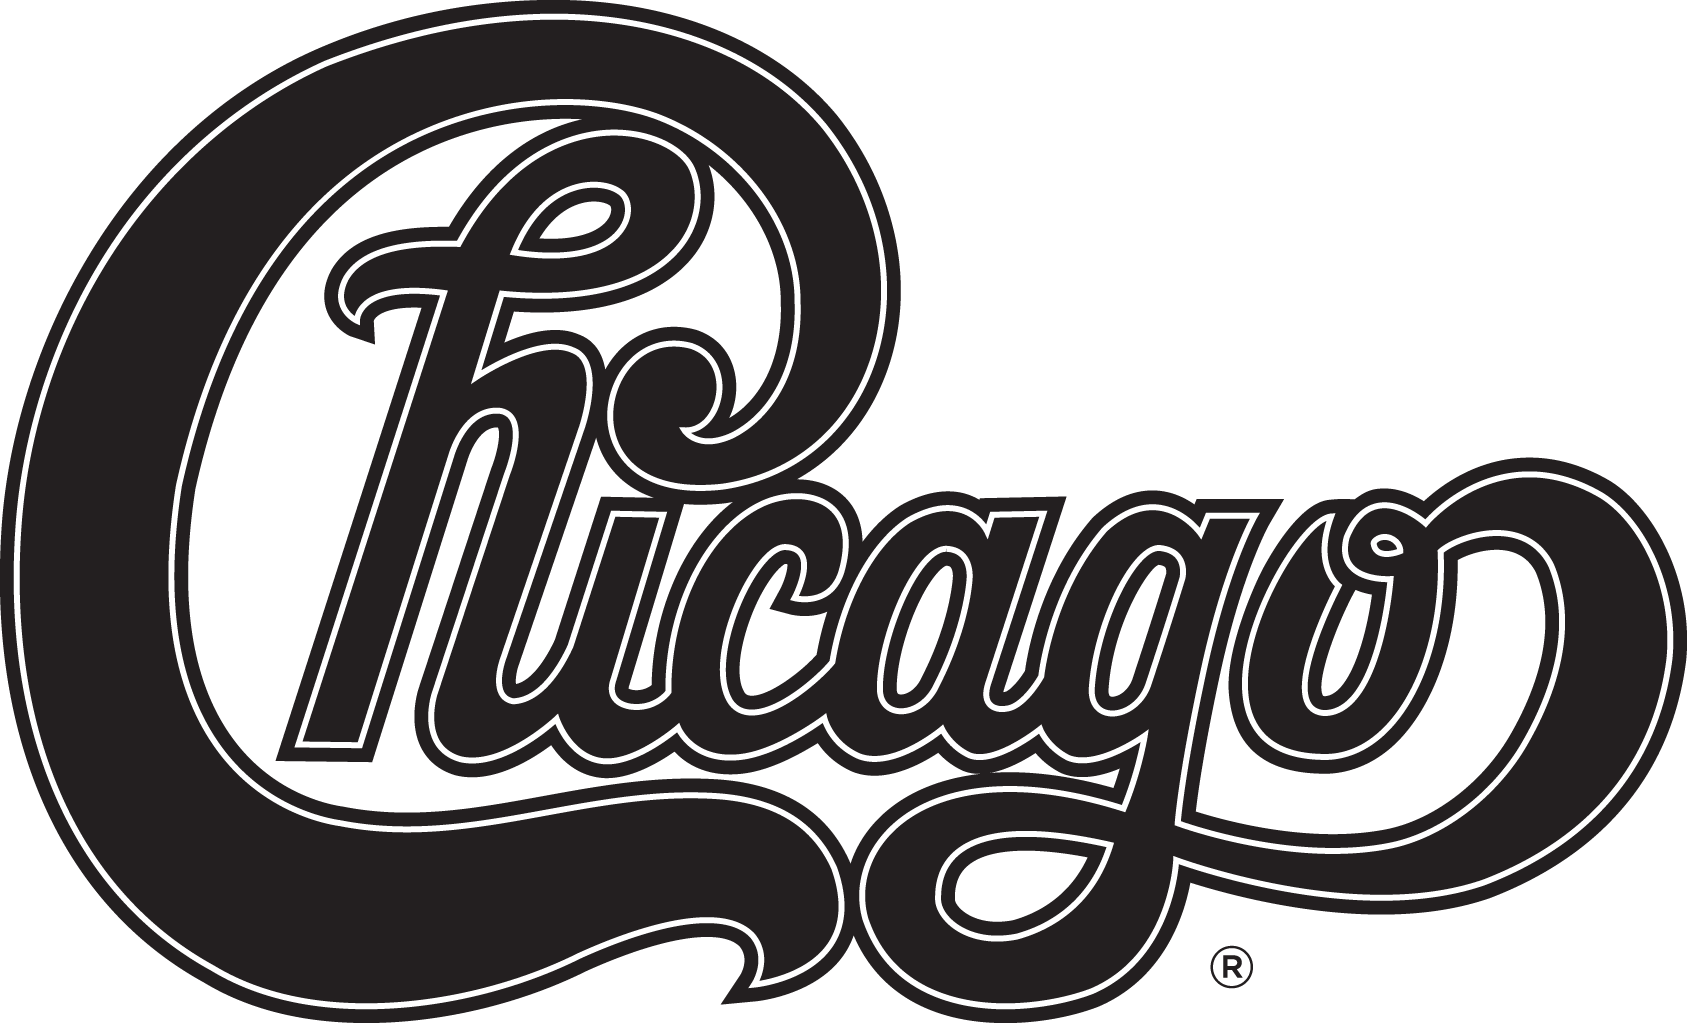 Chicago band logo png. To rock the orpheum